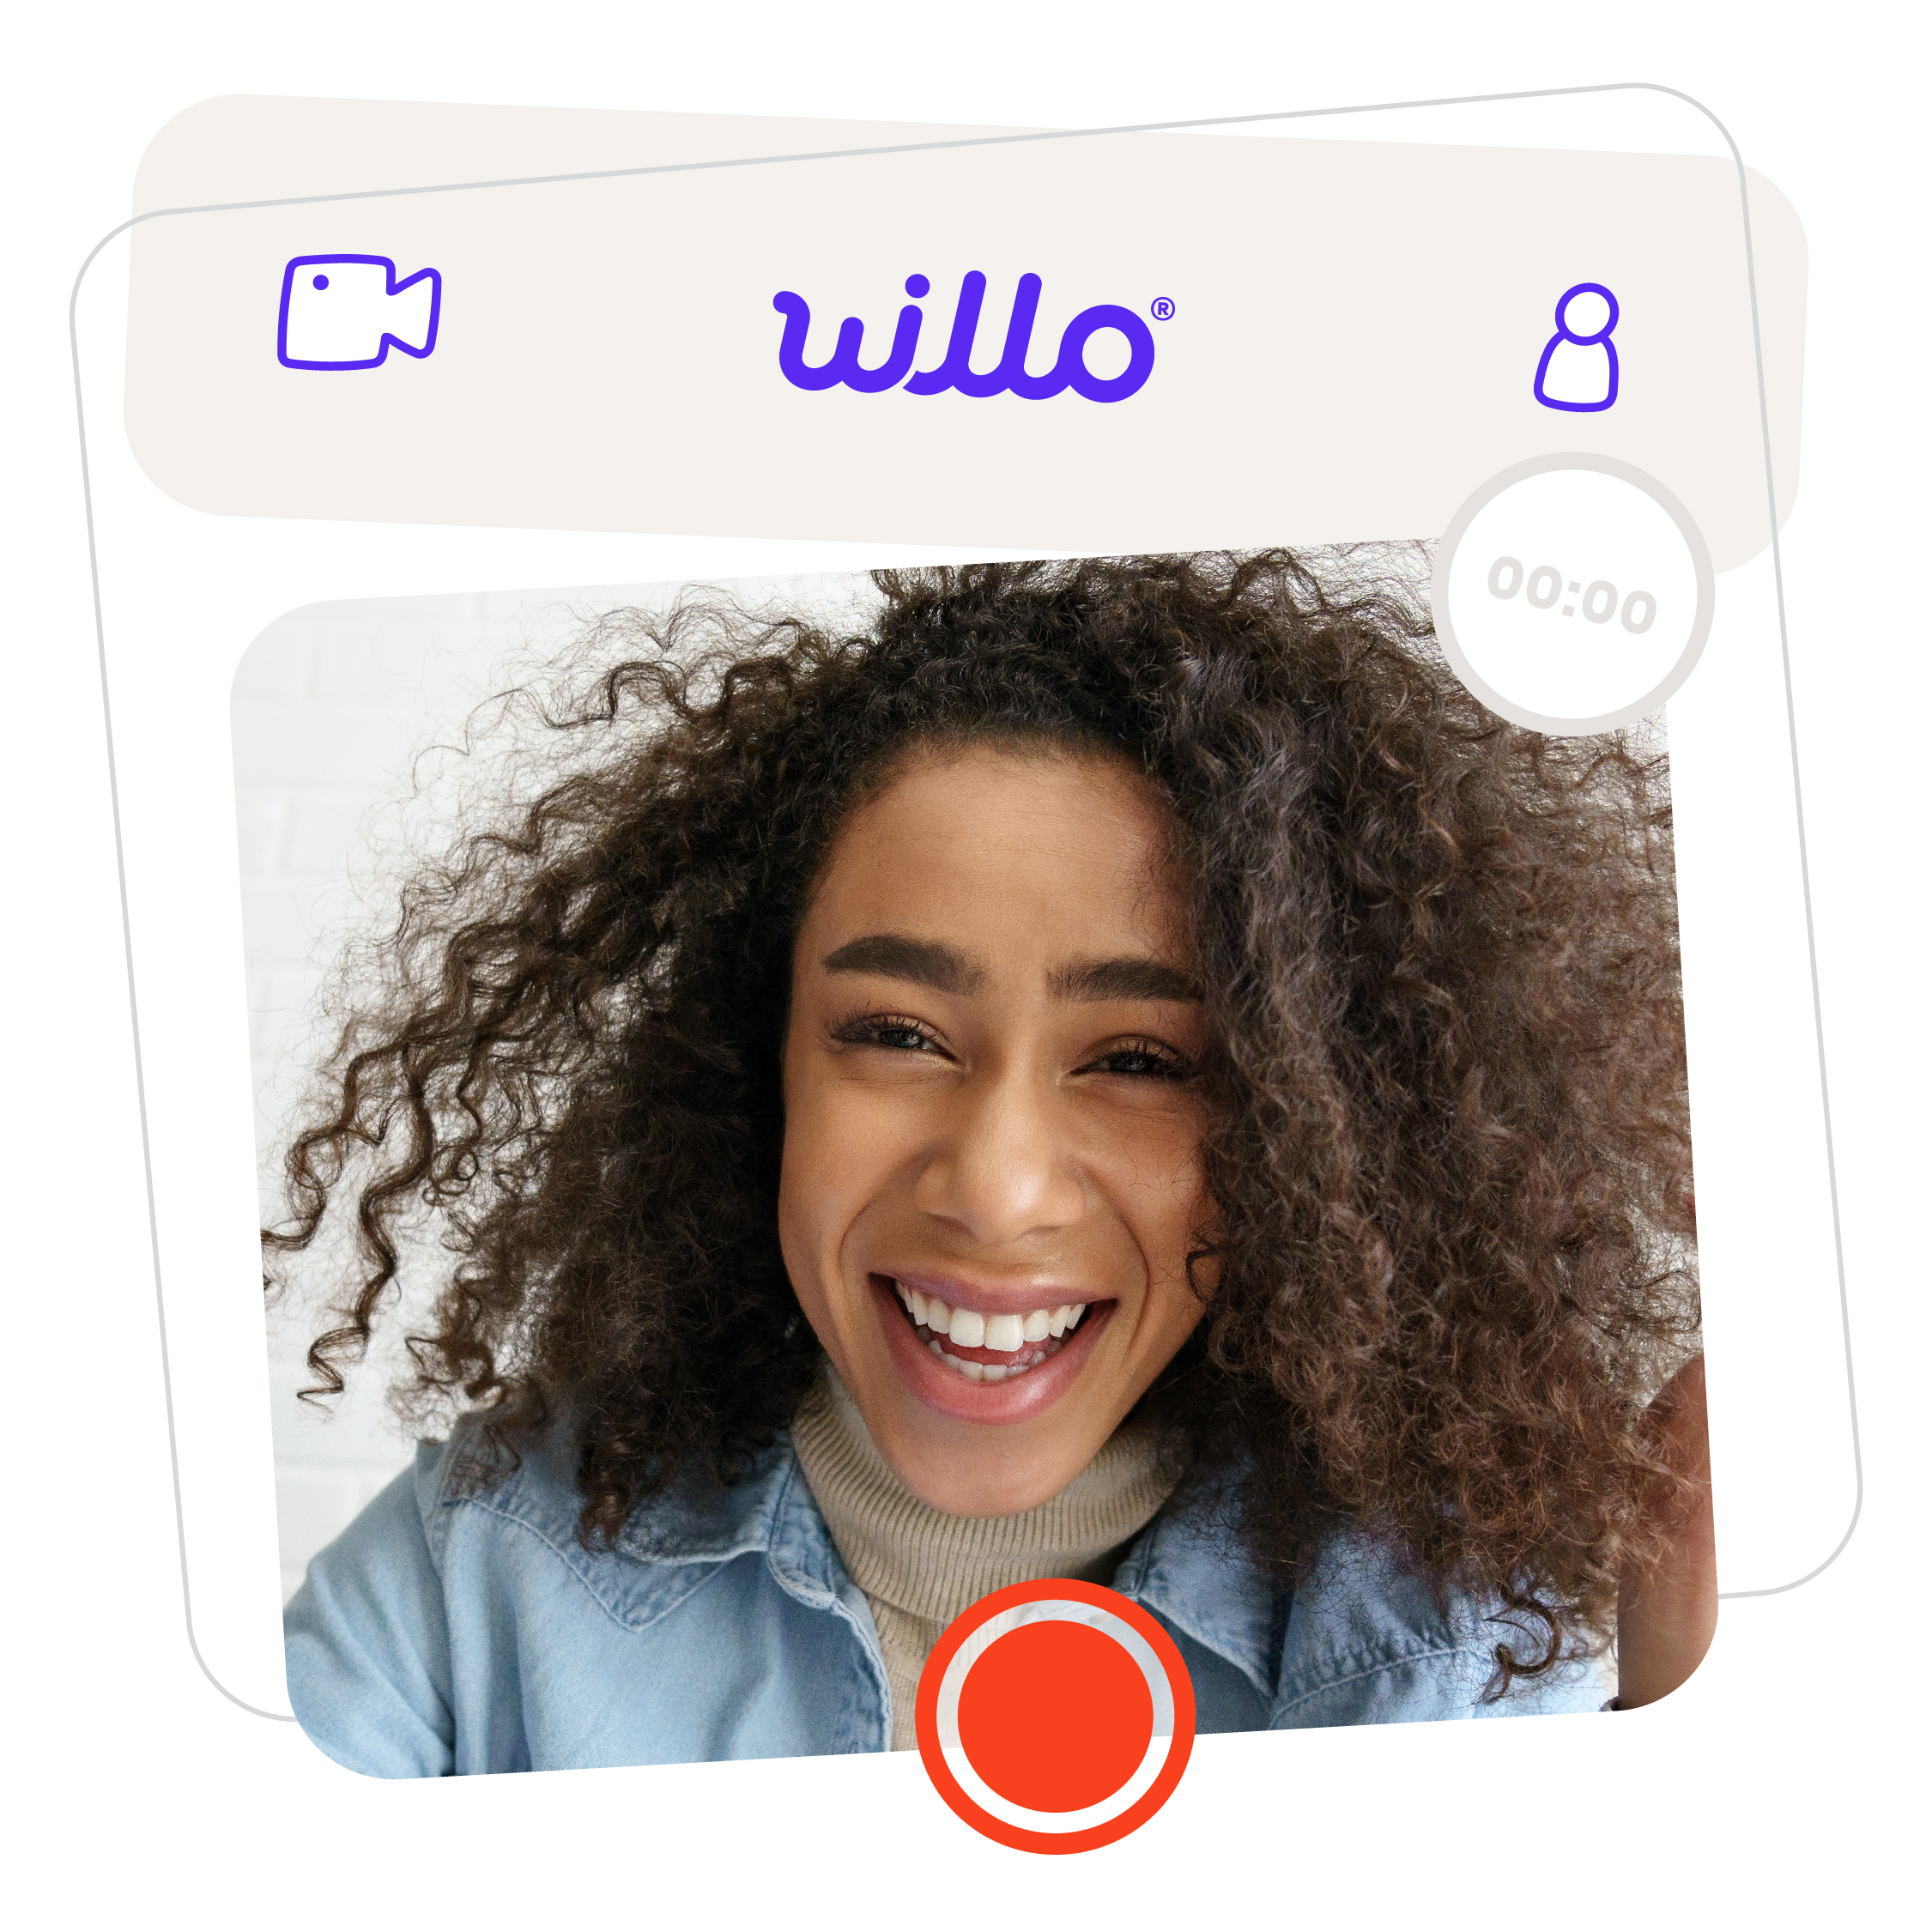 Smiling Girl on Willo Video Interview with curly hair